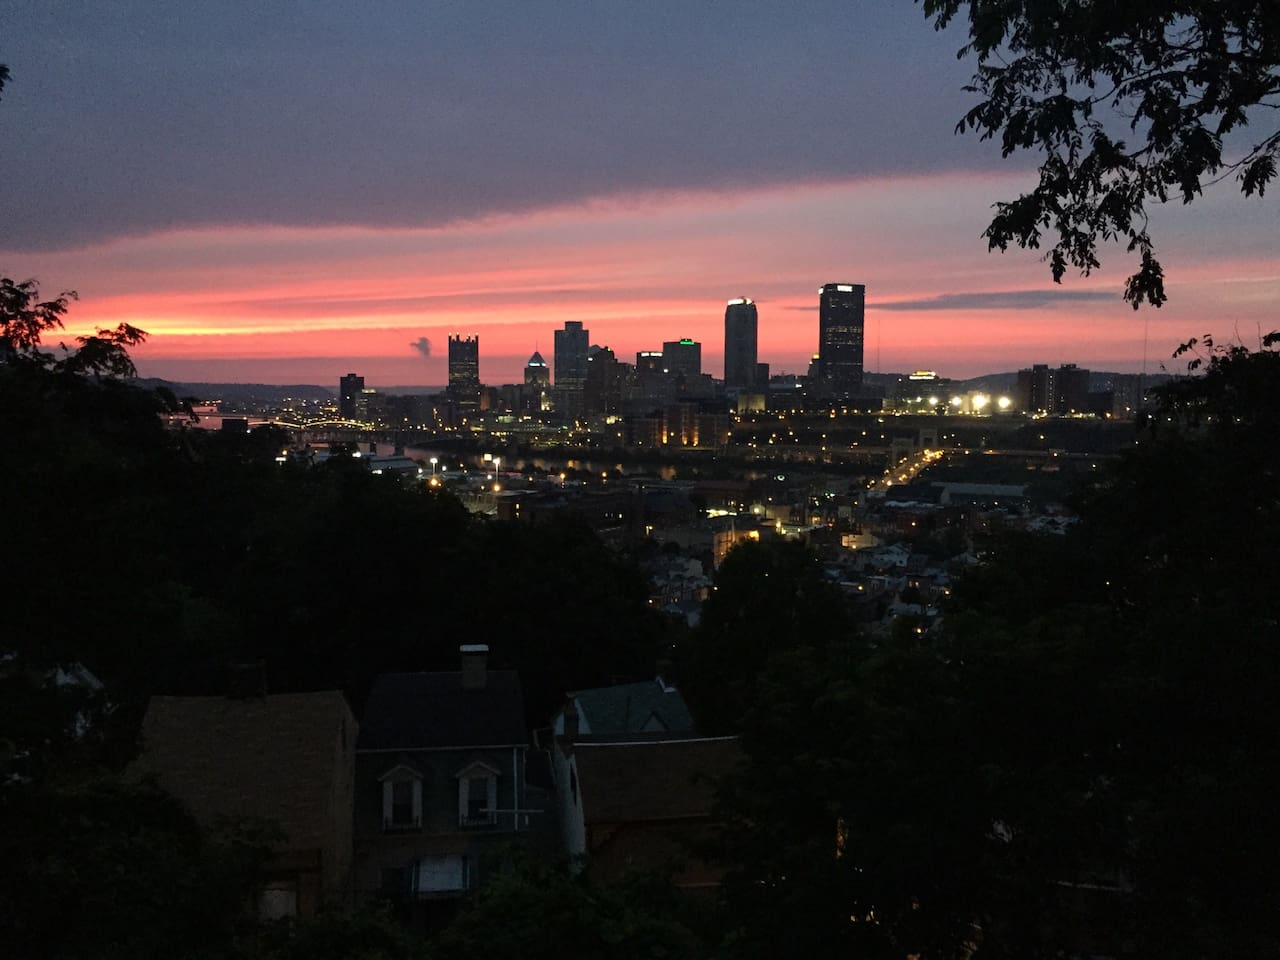 Your view. The house is located in the South Side Slopes and overlooks the downtown skyline and South Side Flats.